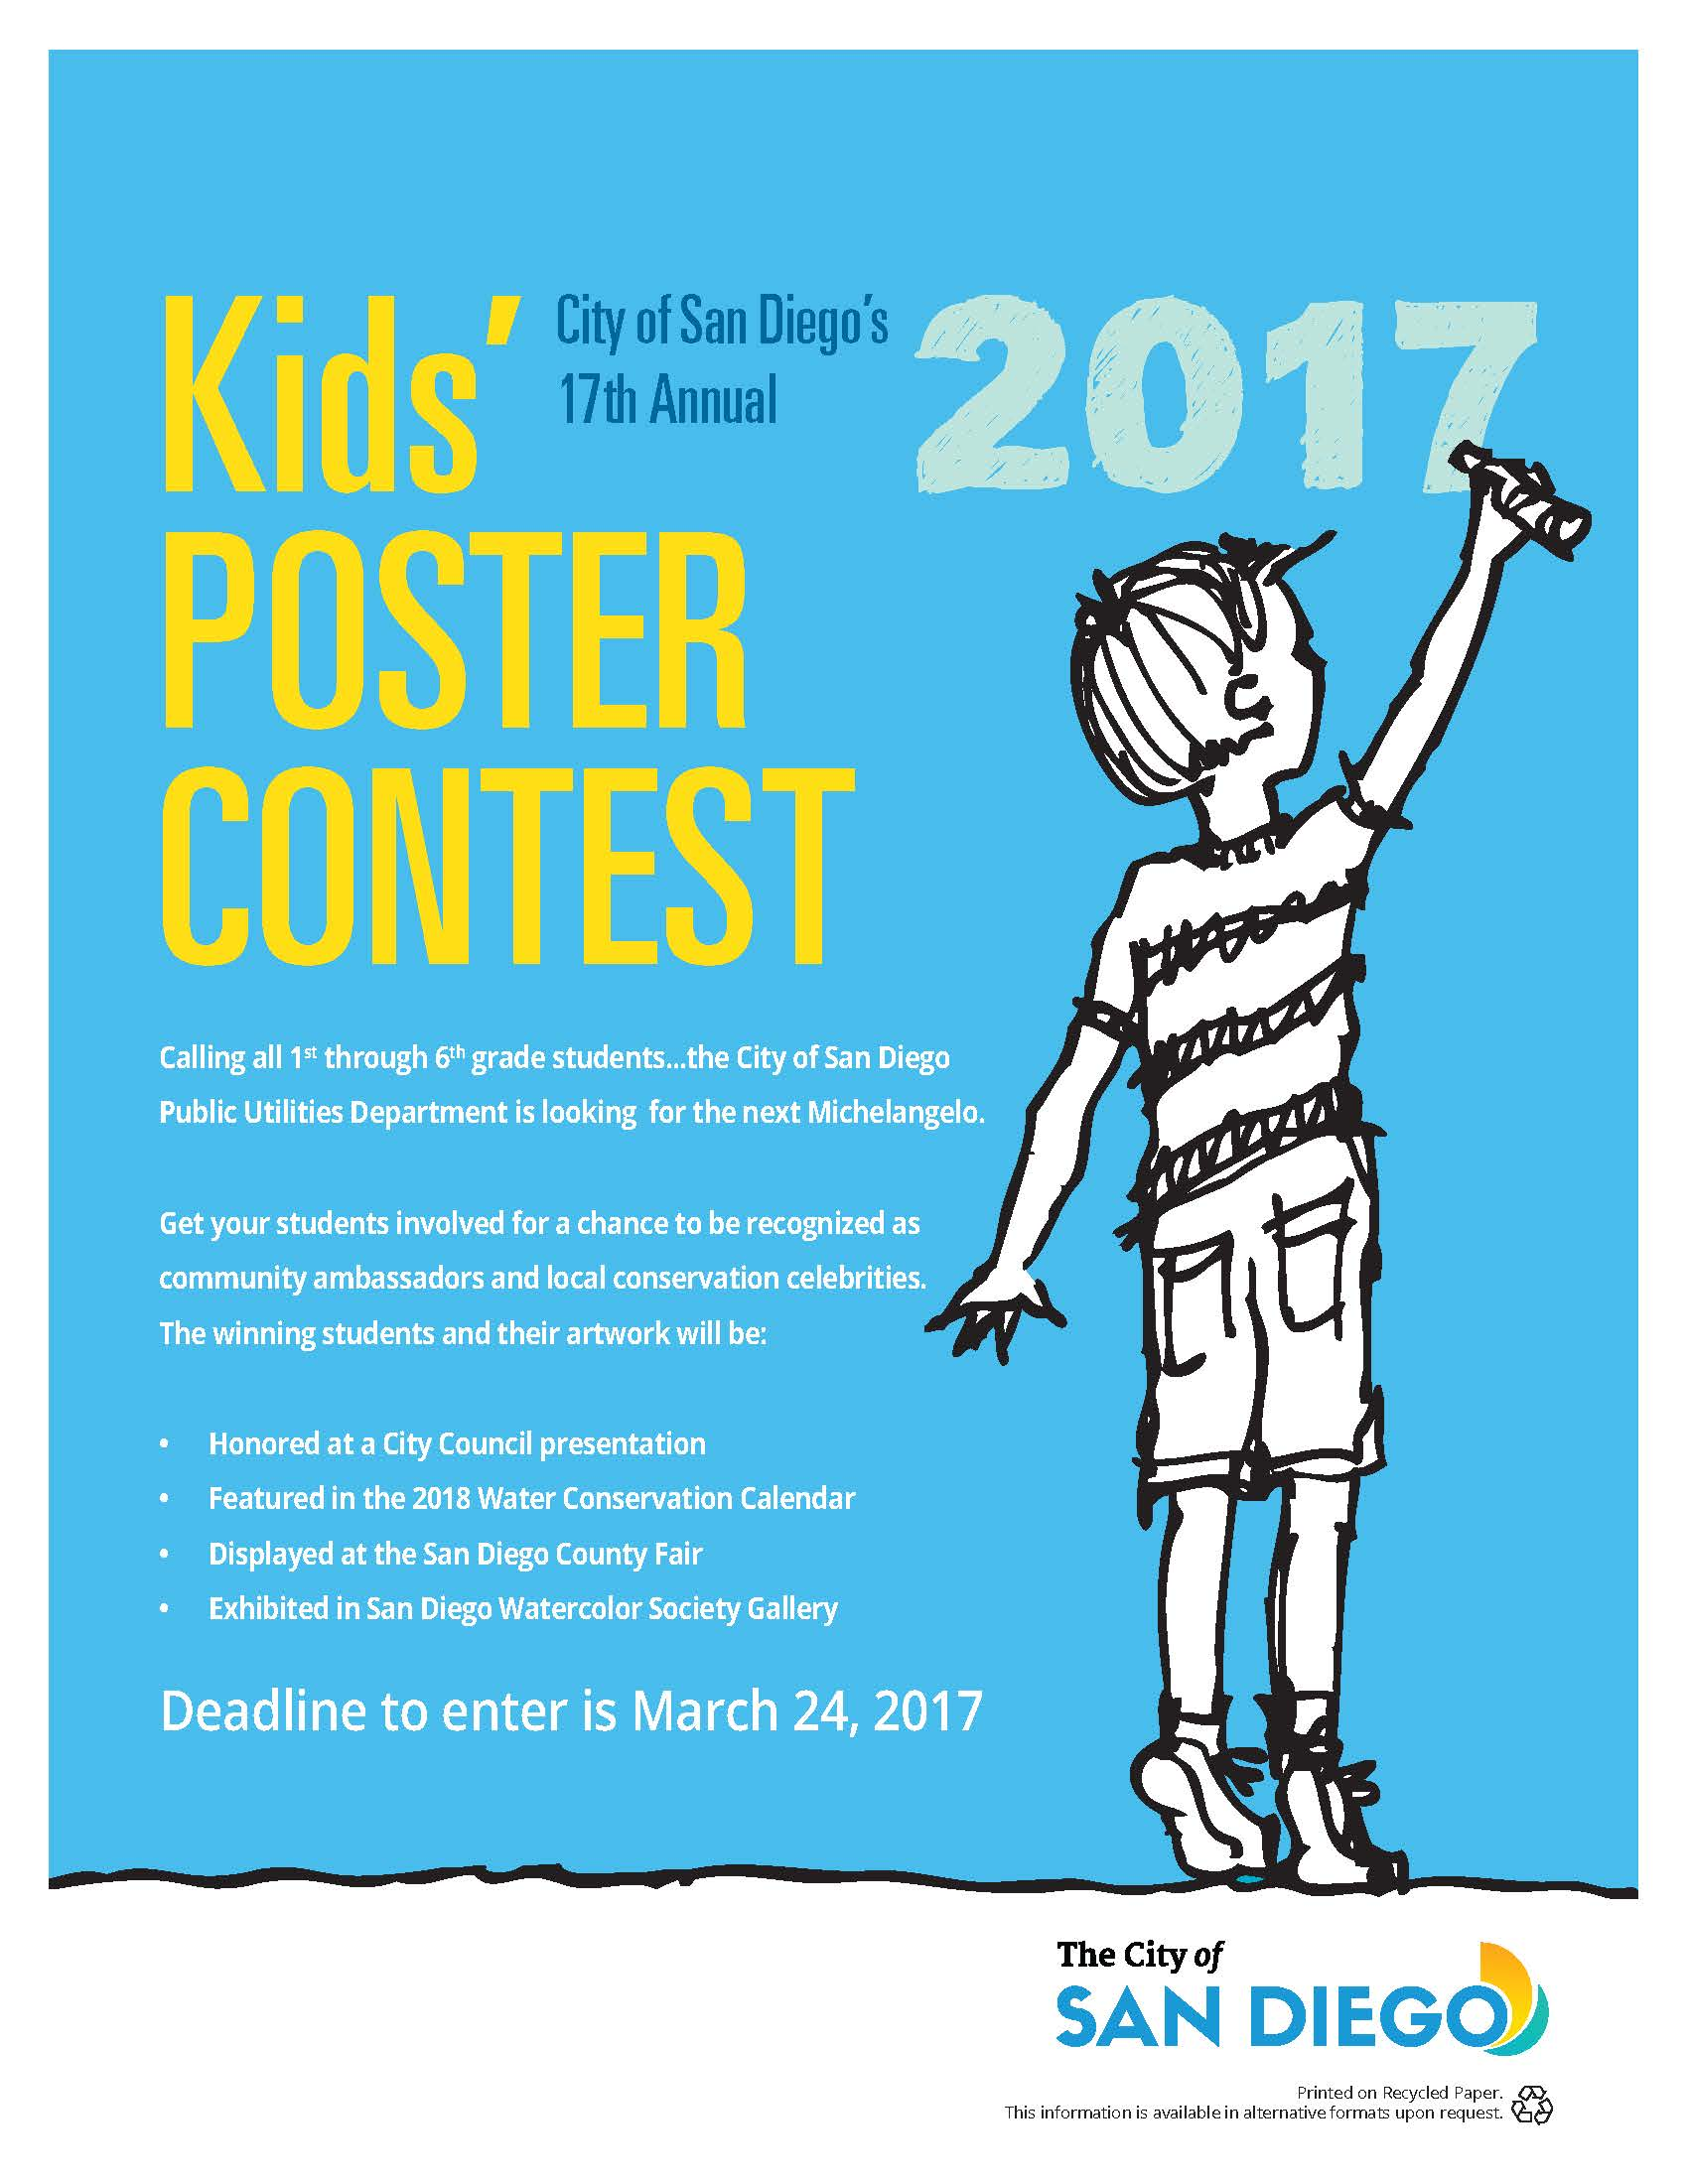 2017 Kids Poster Contest